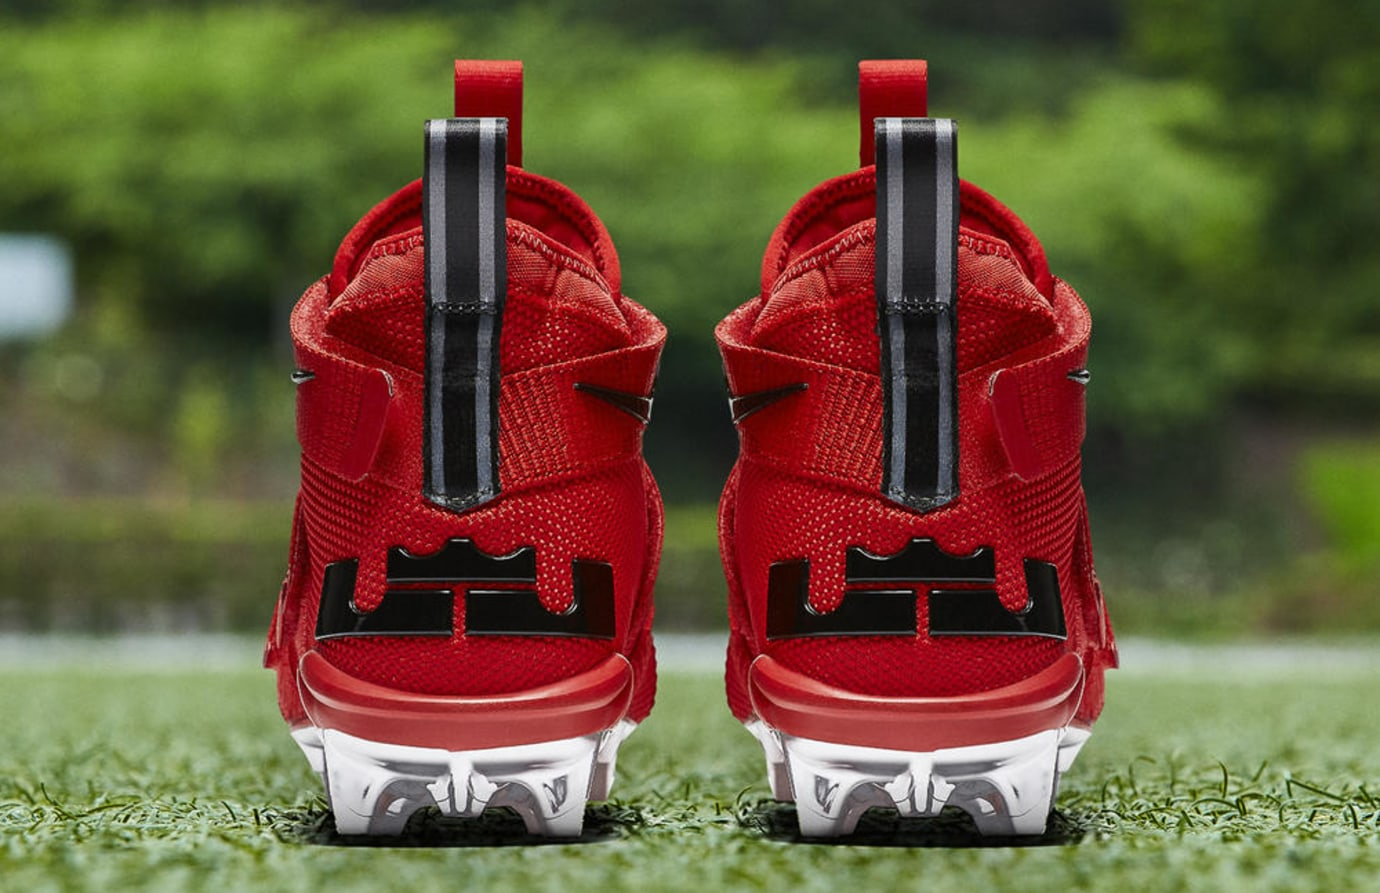 Nike LeBron Soldier 11 Cleats Ohio State Red Release Date AO9146-600 Heel